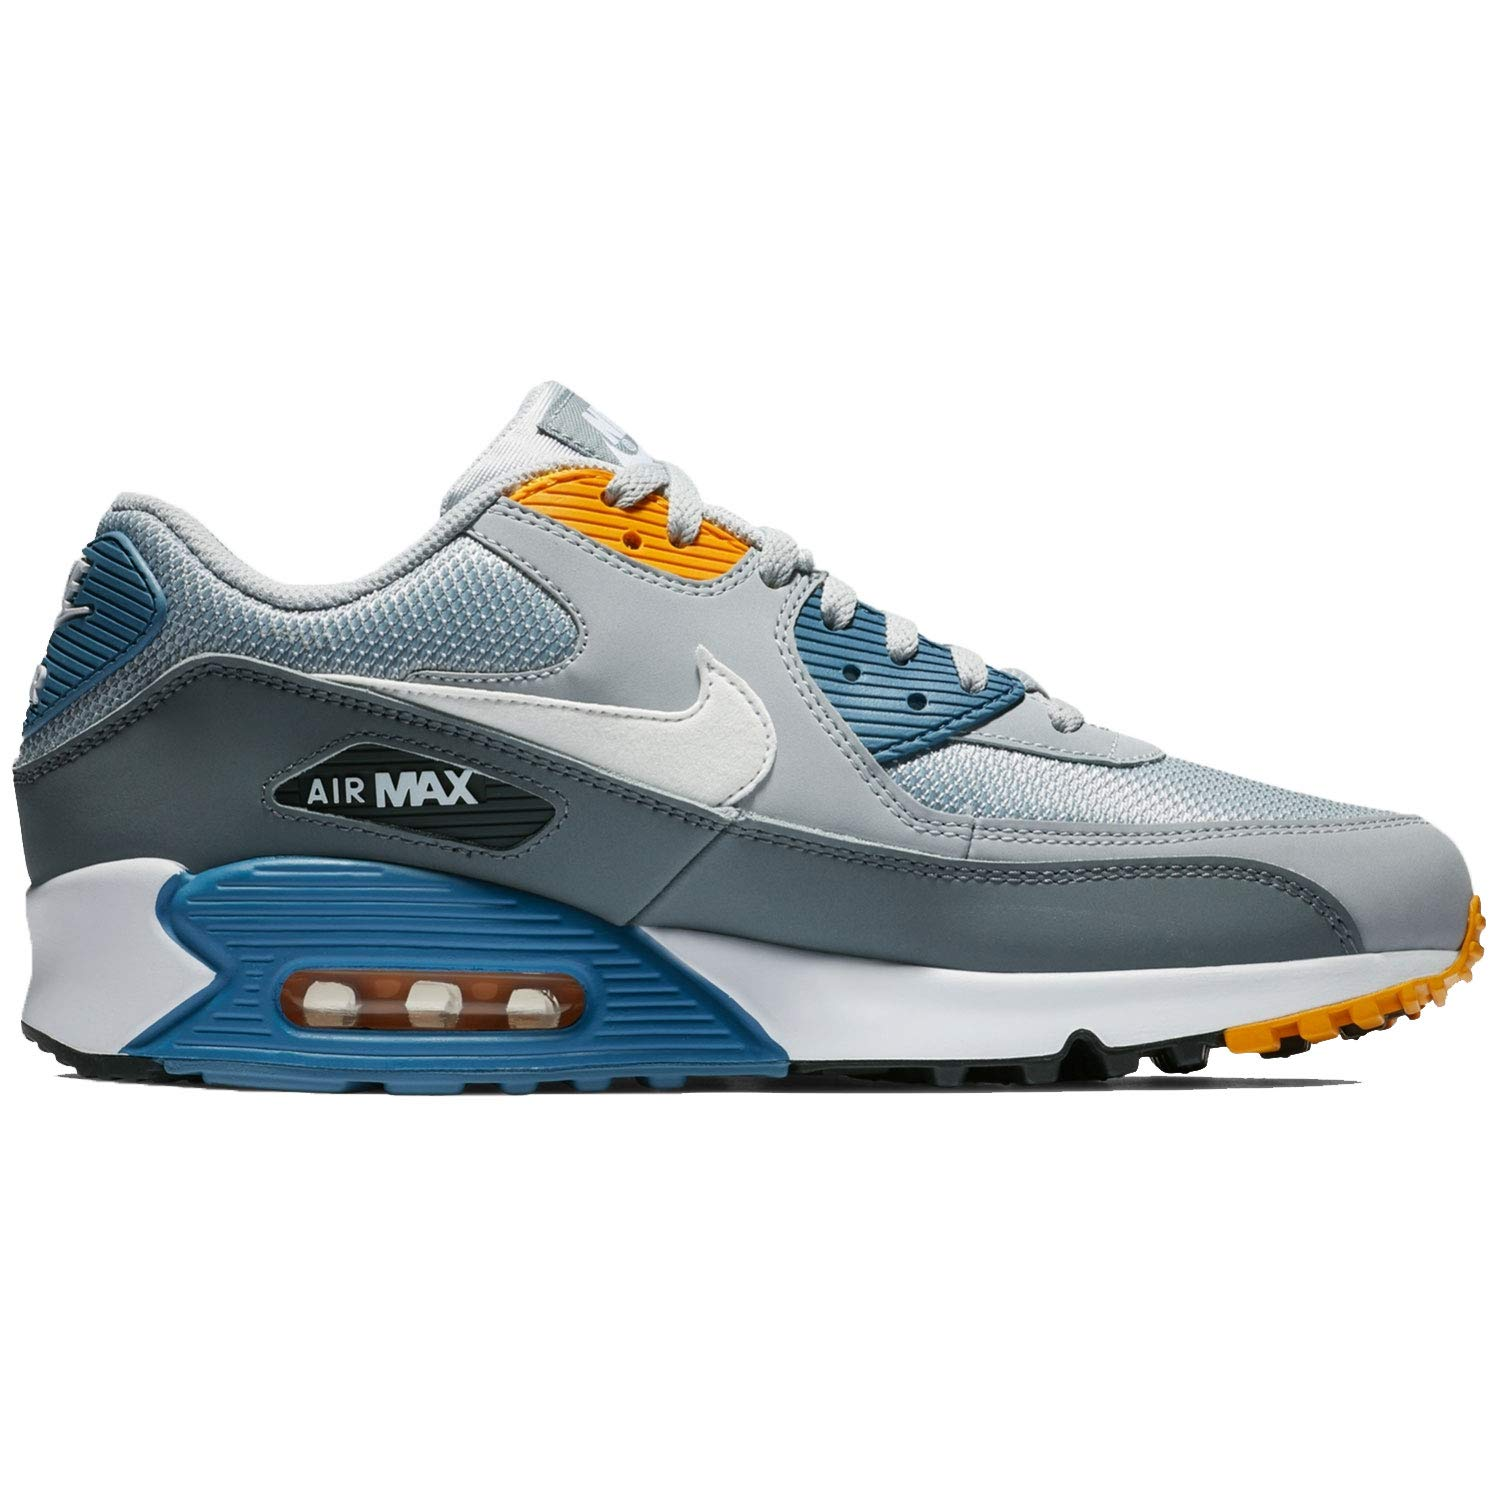 reputable site 730bb 795f5 Nike Air Max 90 Essential, Baskets Basses Homme product image